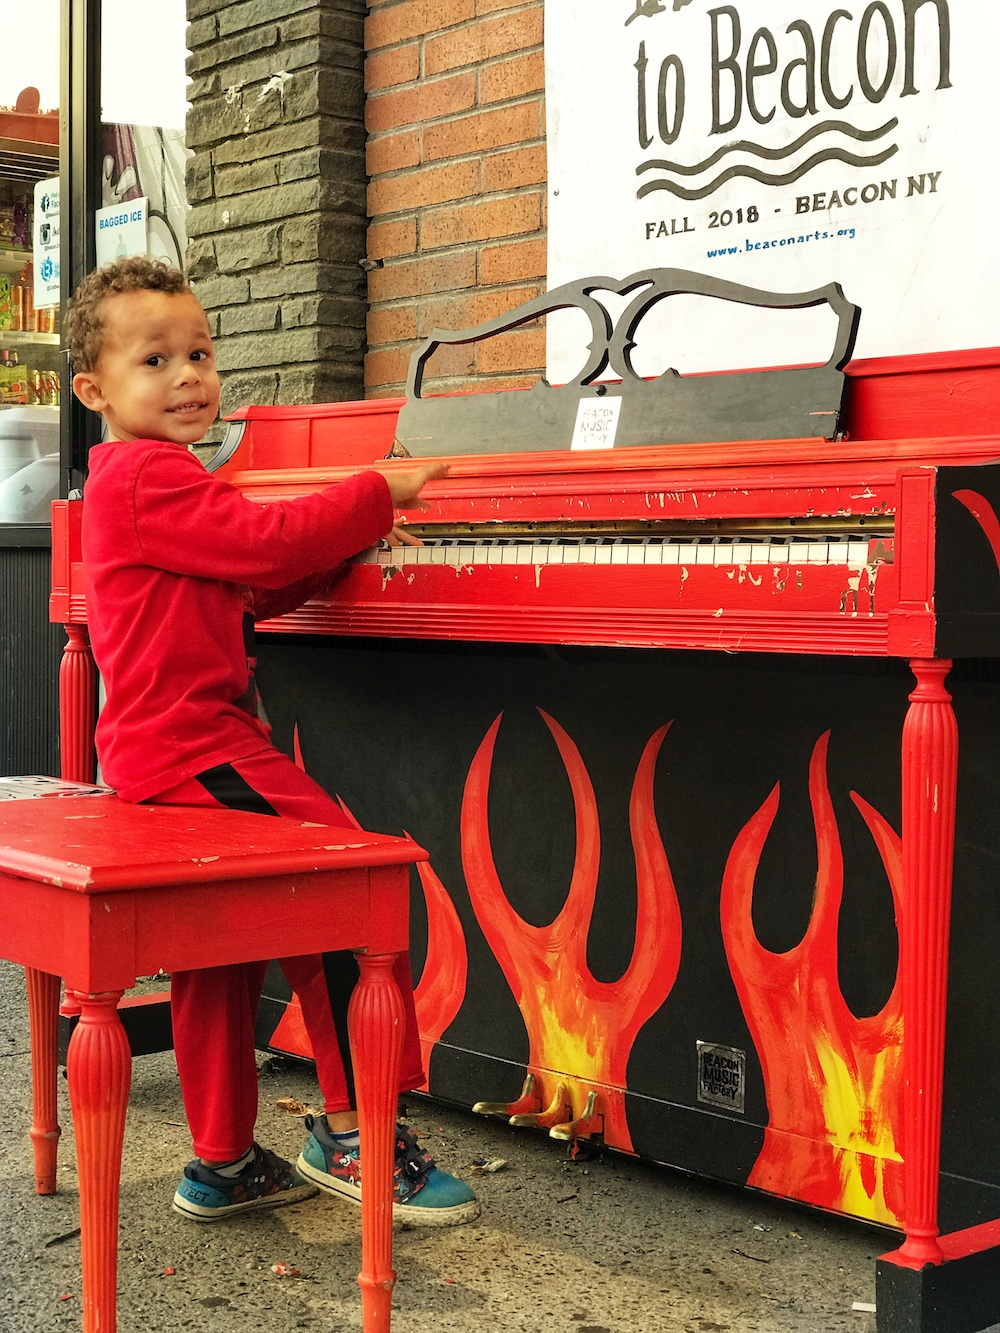 Piano at Key Food.  Photo Credit: Izdihar Dabashi